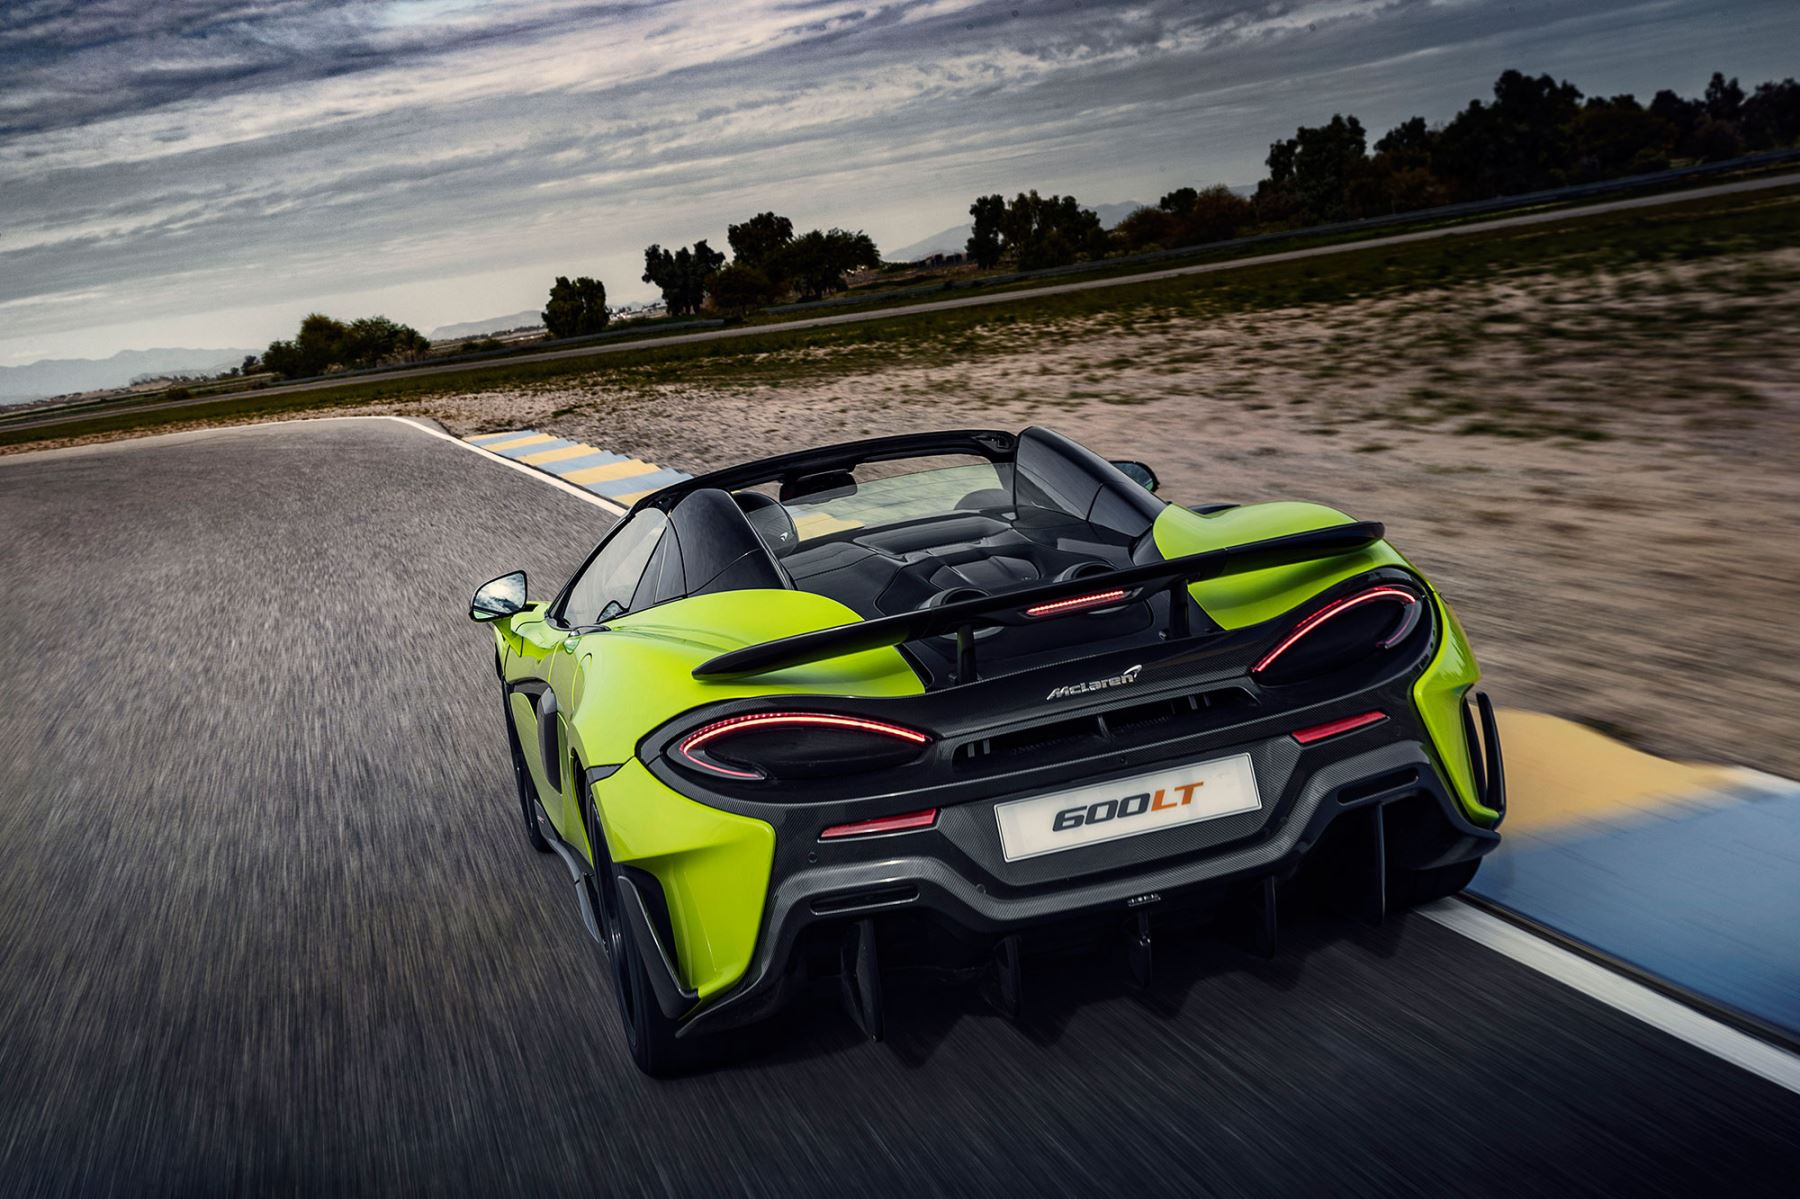 McLaren 600LT Spider - The Edge Amplified image 6